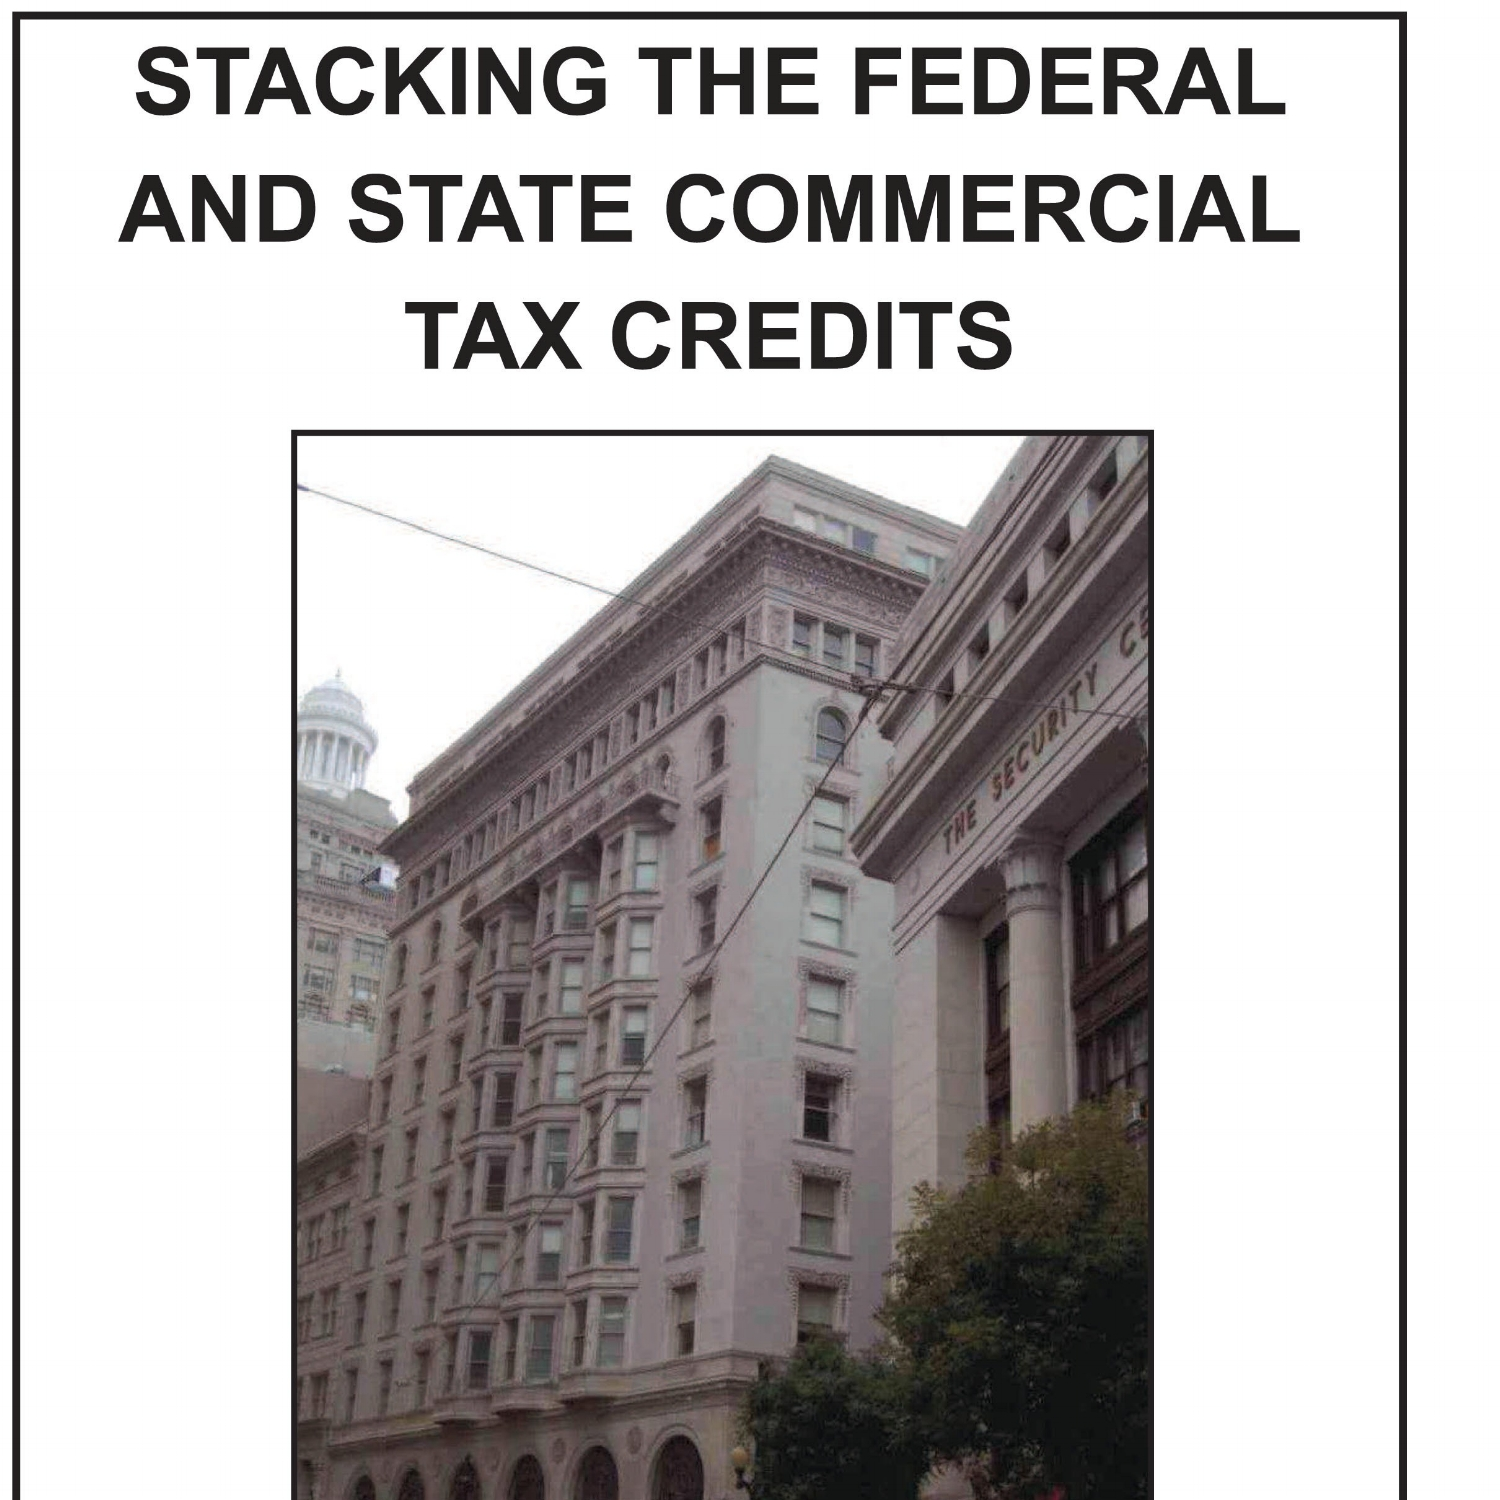 Stacking-the-Federal-and-State-Commercial-Credits-Cover-10-15-14.jpg